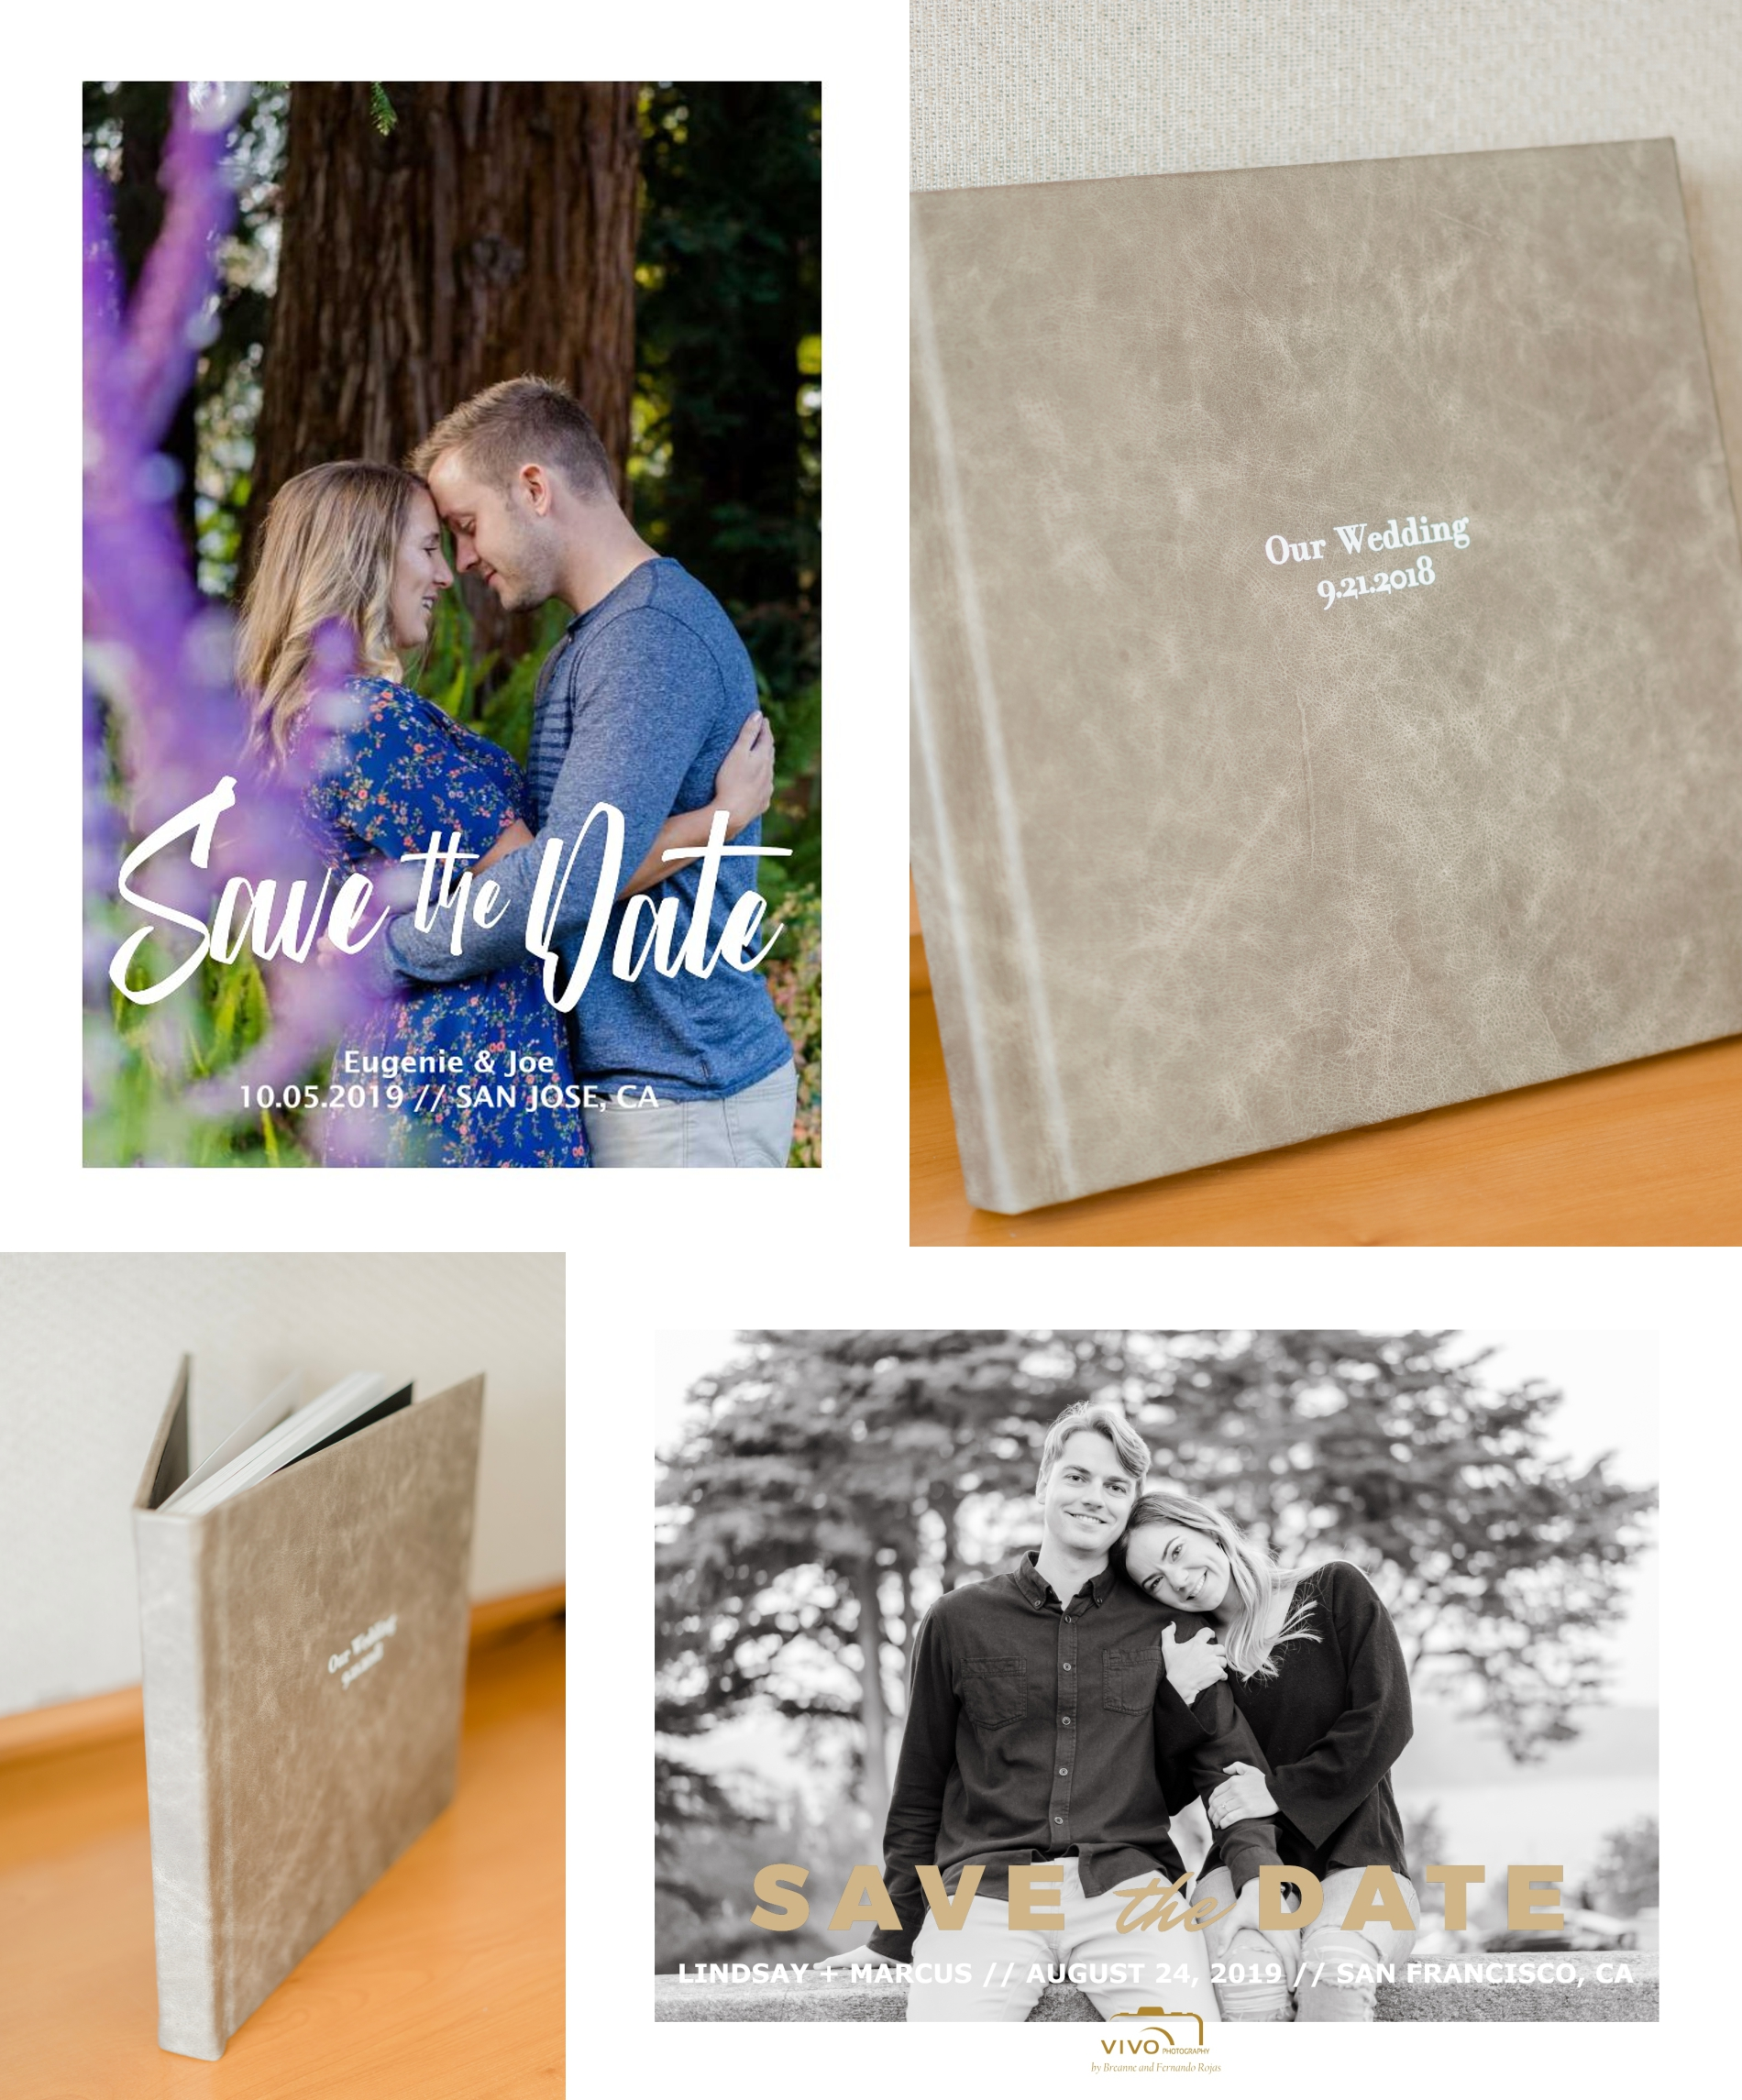 Vivo Photography Herloom wedding albums and custom designed save the date cards made from engagement photos